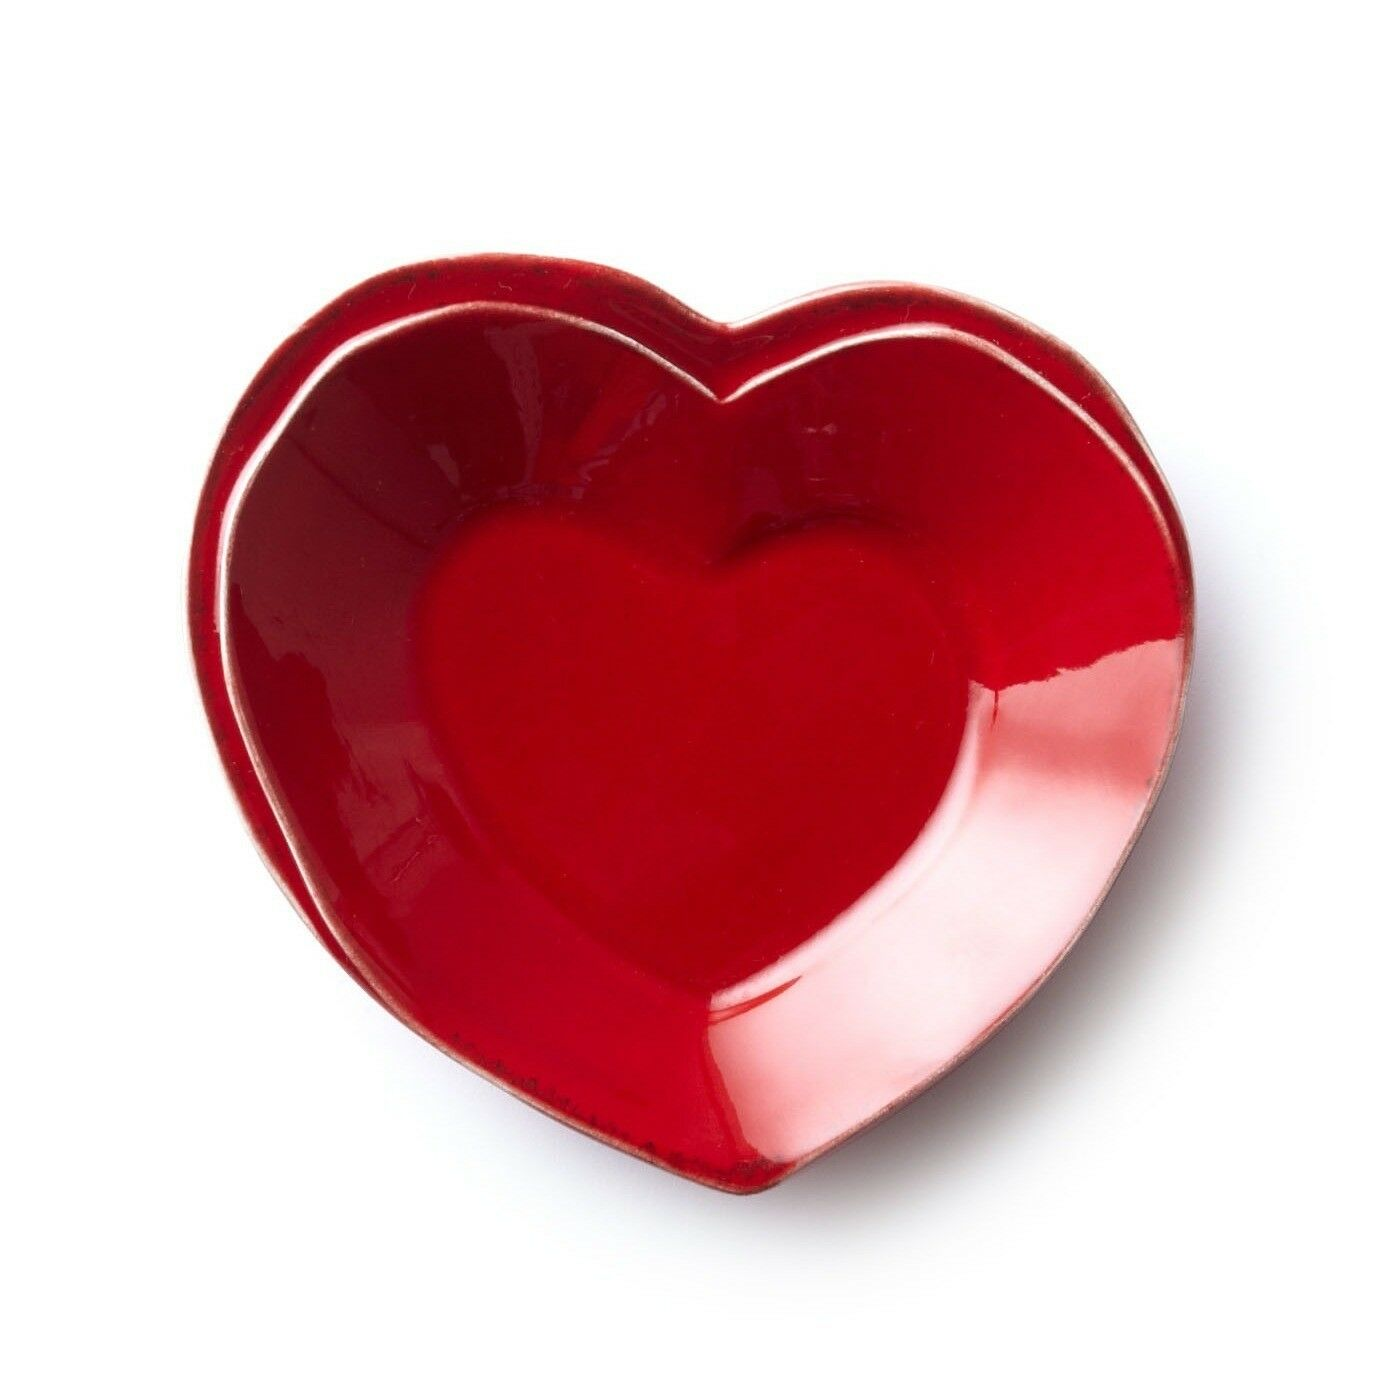 Vietri Lastra Red Heart Dish - Set of 4